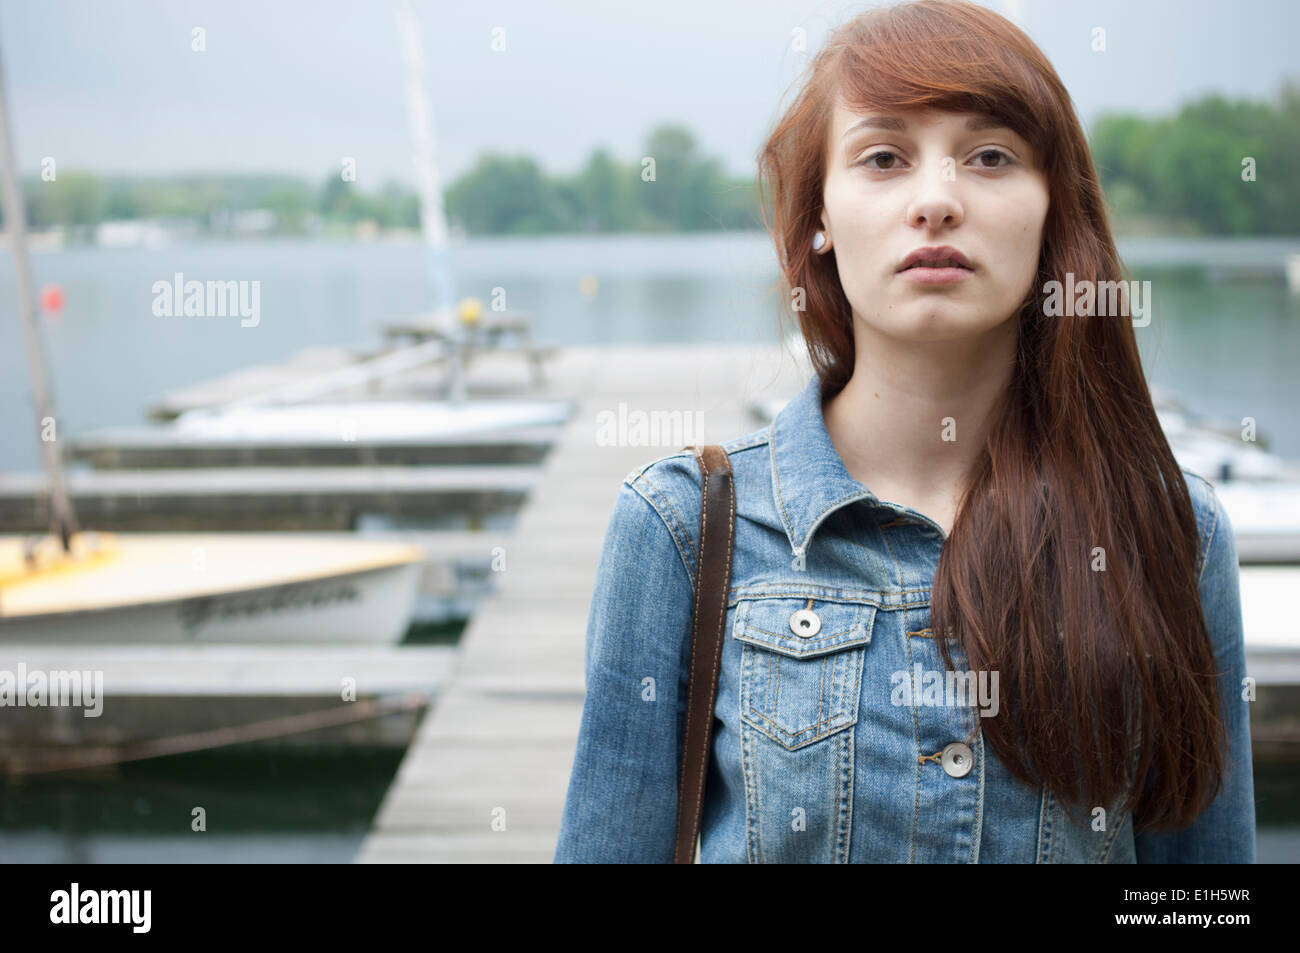 Portrait of serious young woman by lake - Stock Image